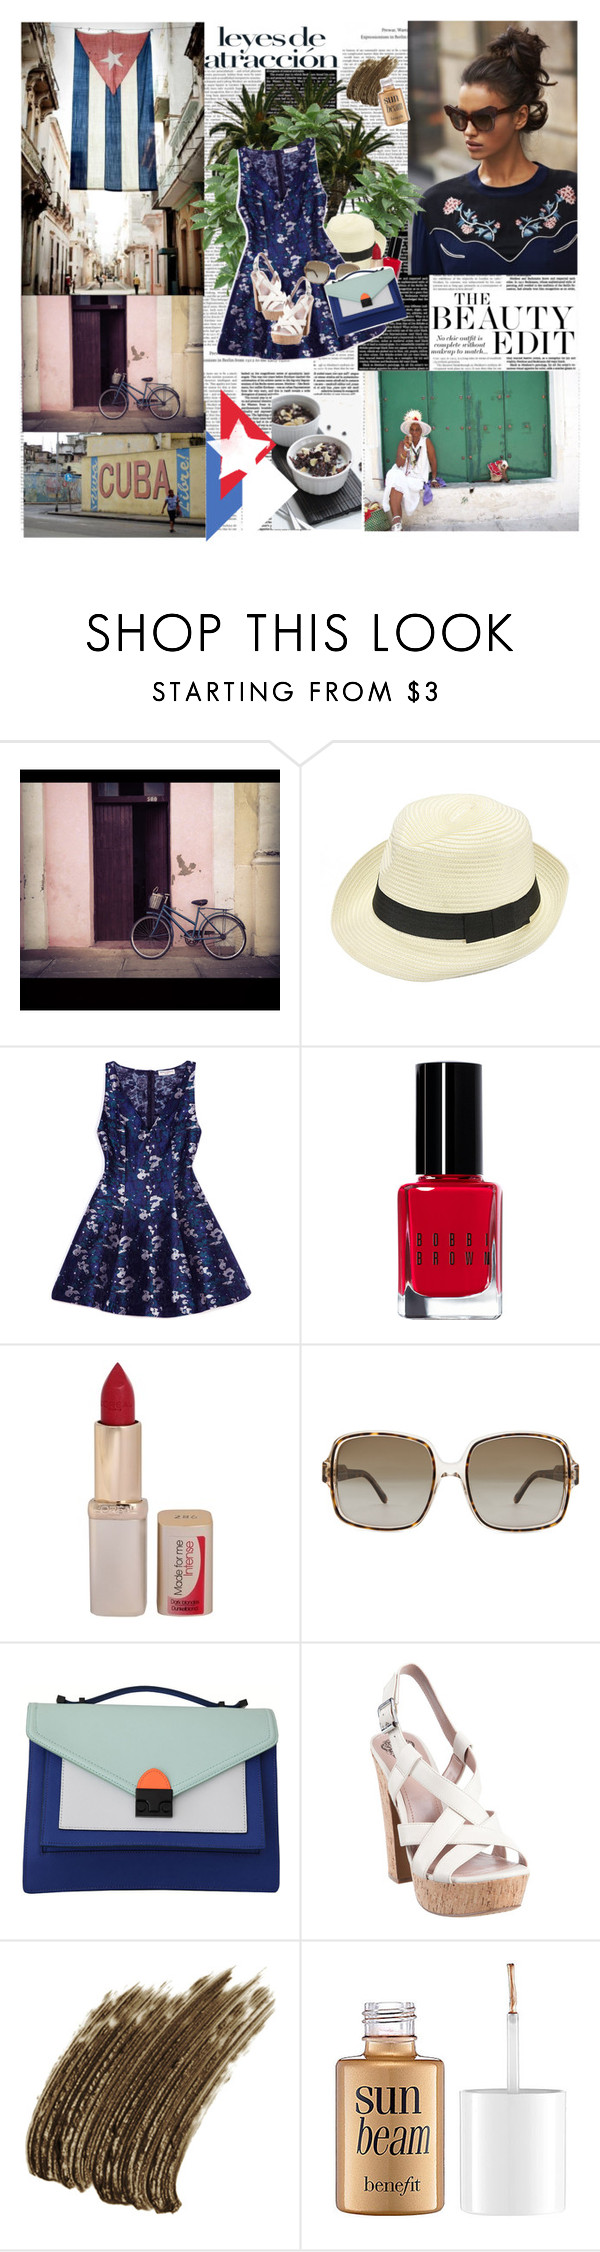 """Cuba"" by miska-miska ❤ liked on Polyvore featuring Opening Ceremony, Bobbi Brown Cosmetics, L'Oréal Paris, STELLA McCARTNEY, Loeffler Randall, Vince Camuto, Yves Saint Laurent, Benefit, women's clothing and women"